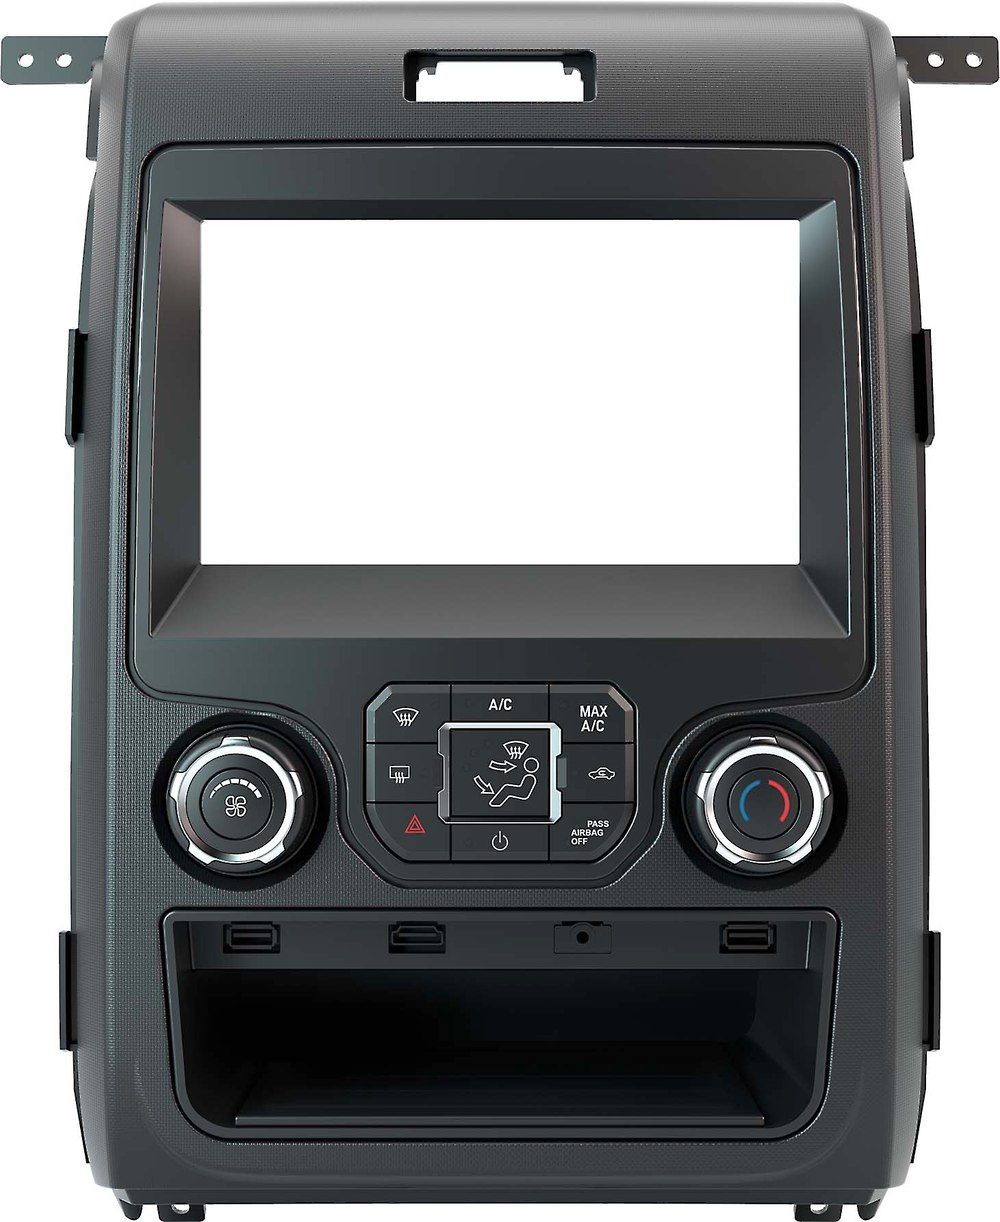 x794K150 F idatalink k150 dash kit install a new car stereo in select 2013 14 Dash Kit for F150 at bakdesigns.co